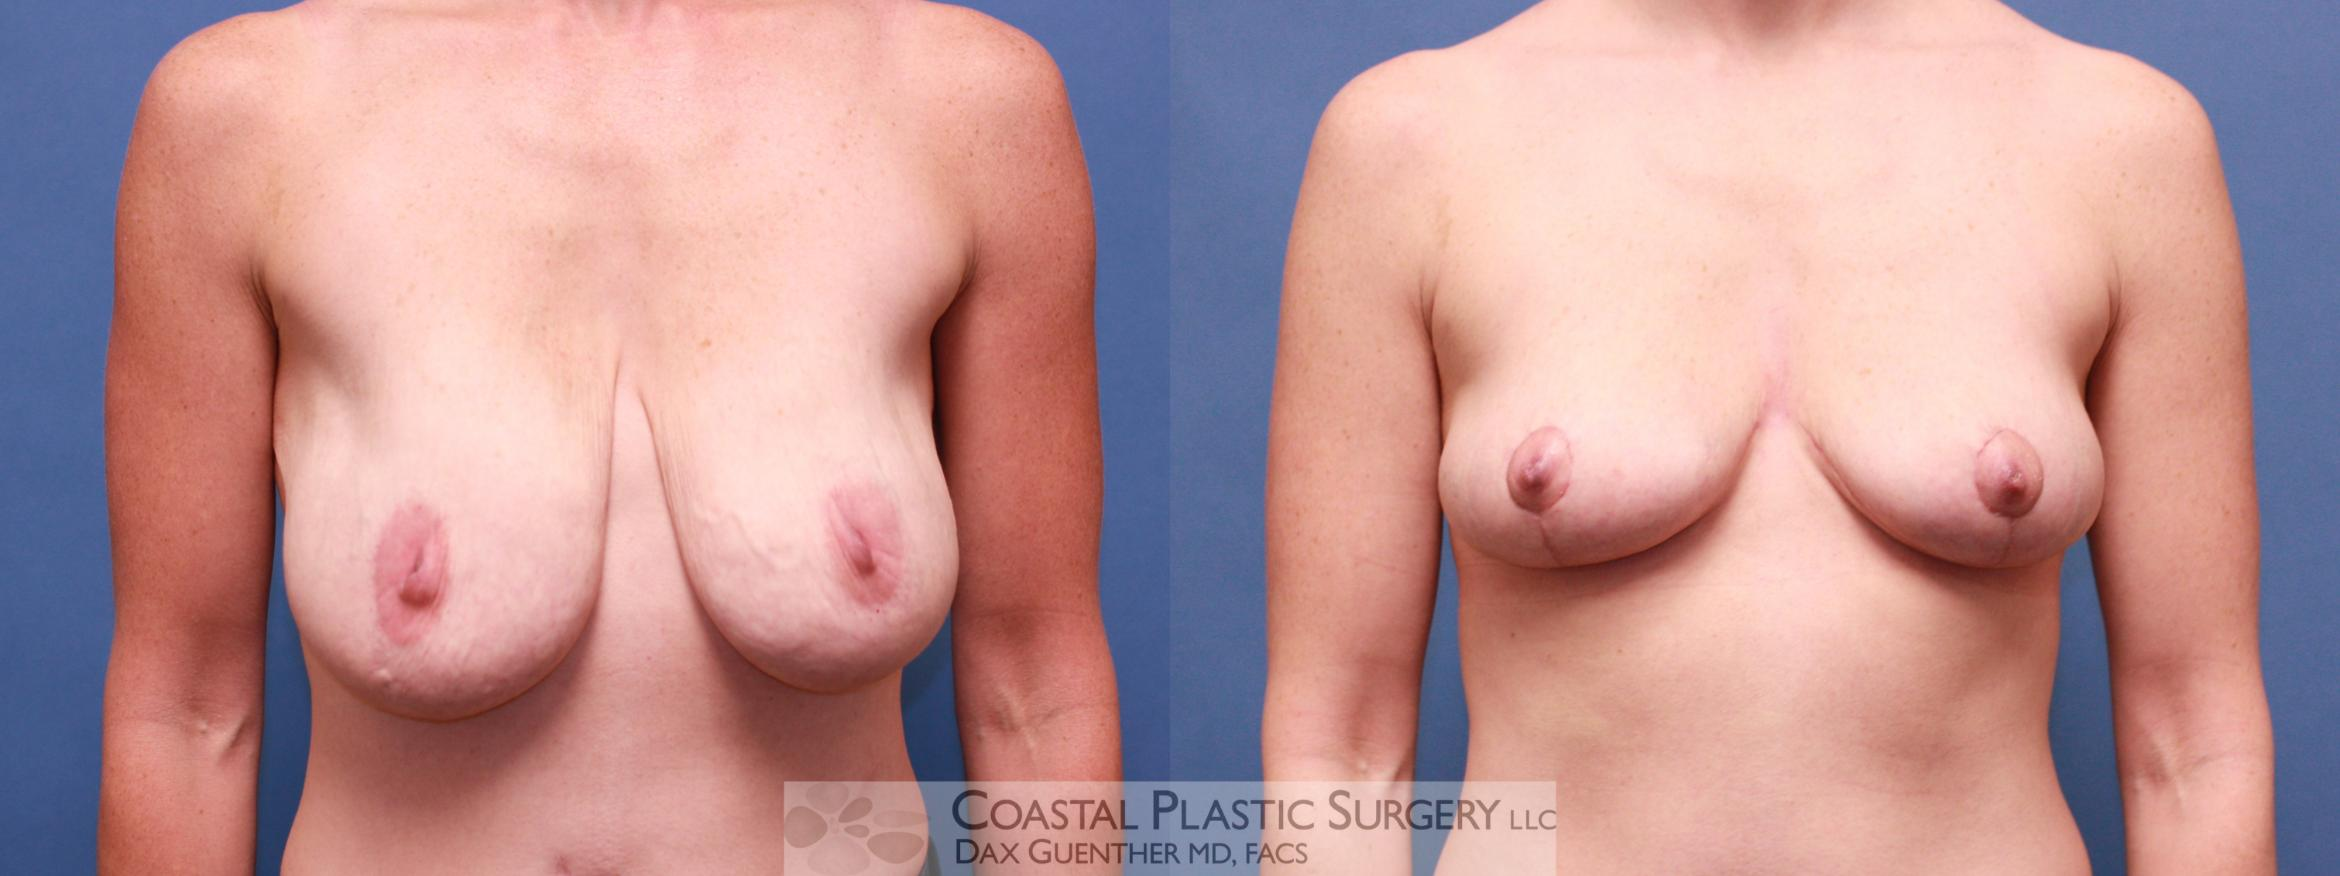 Breast Lift Before & After Photo | Hingham, Boston & Nantucket, MA | Dax Guenther, MD: Coastal Plastic Surgery